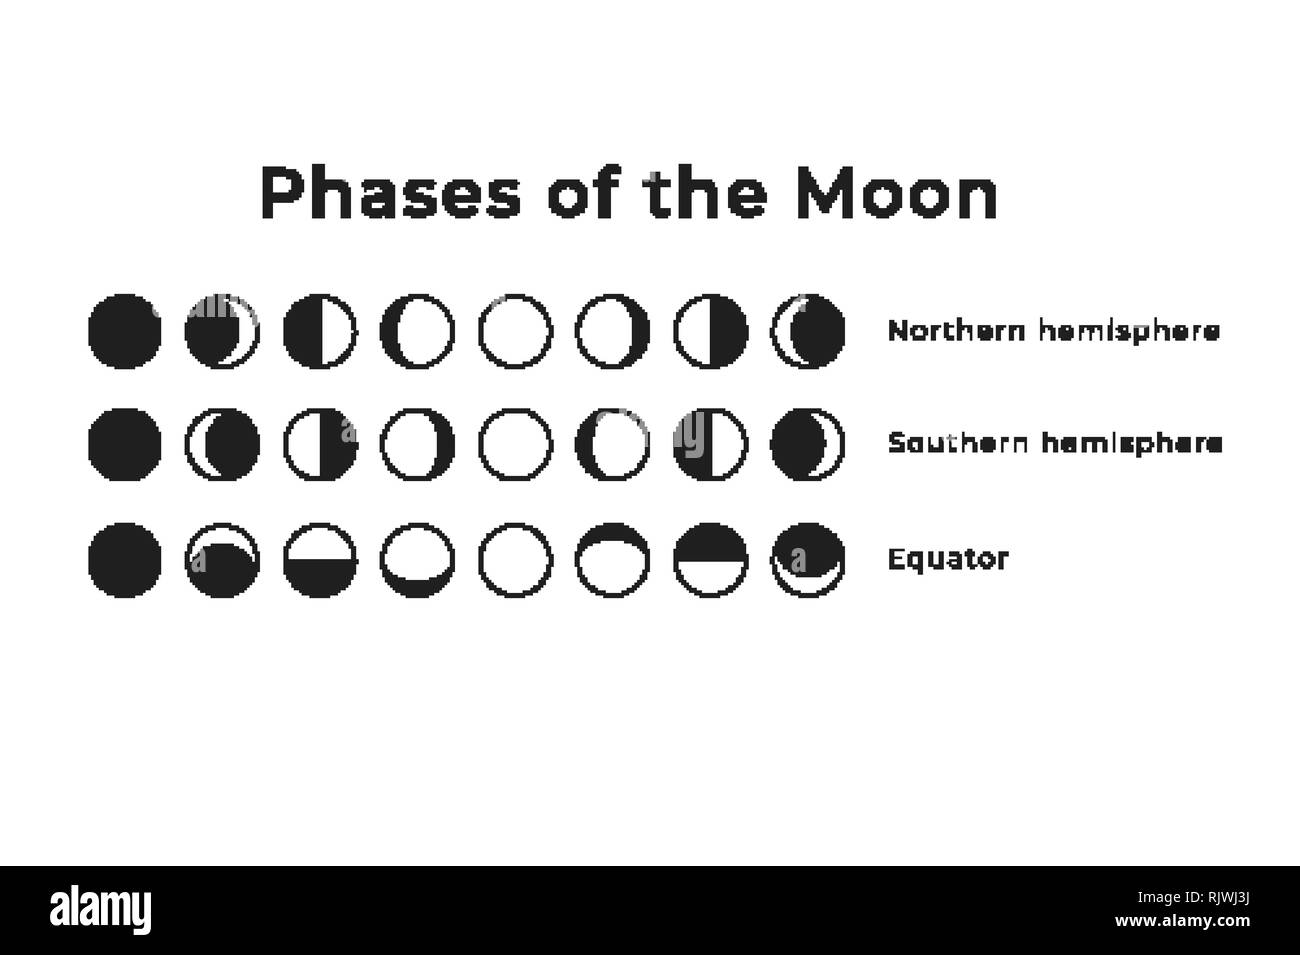 Phases of the Moon as they are visible on the different hemispheres of Earth - Stock Image